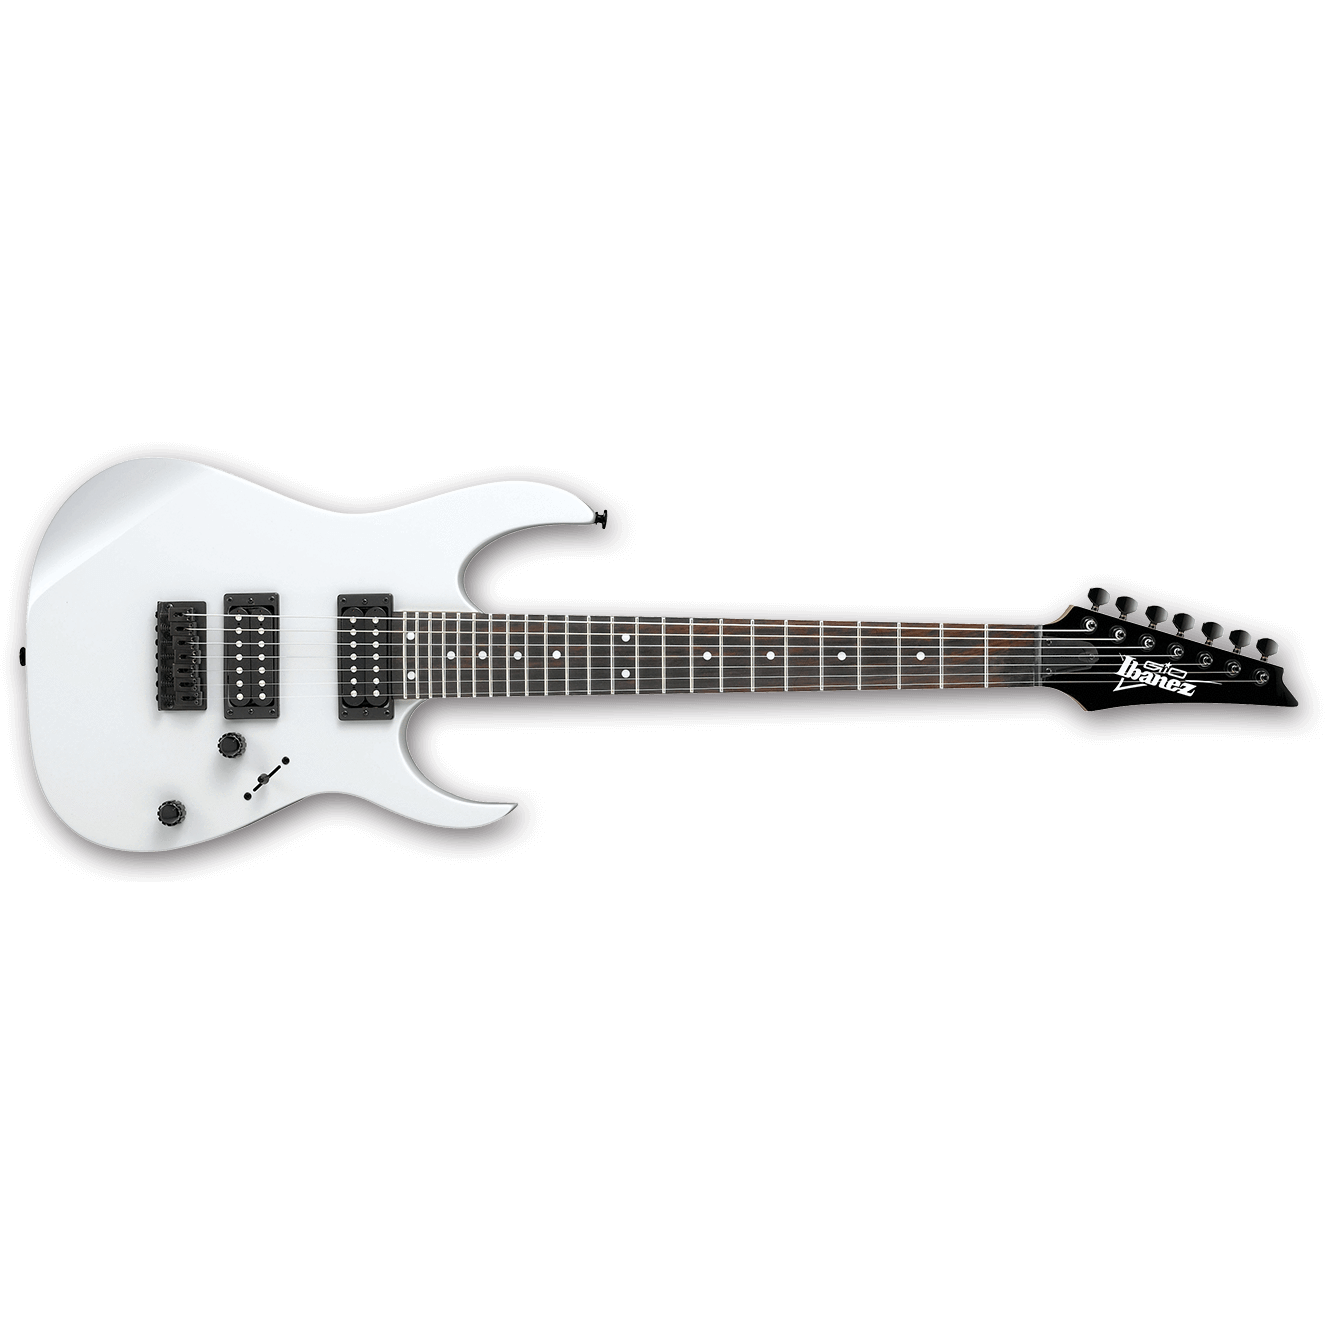 ibanez grg170dxb electric guitar harry green music world buy online. Black Bedroom Furniture Sets. Home Design Ideas